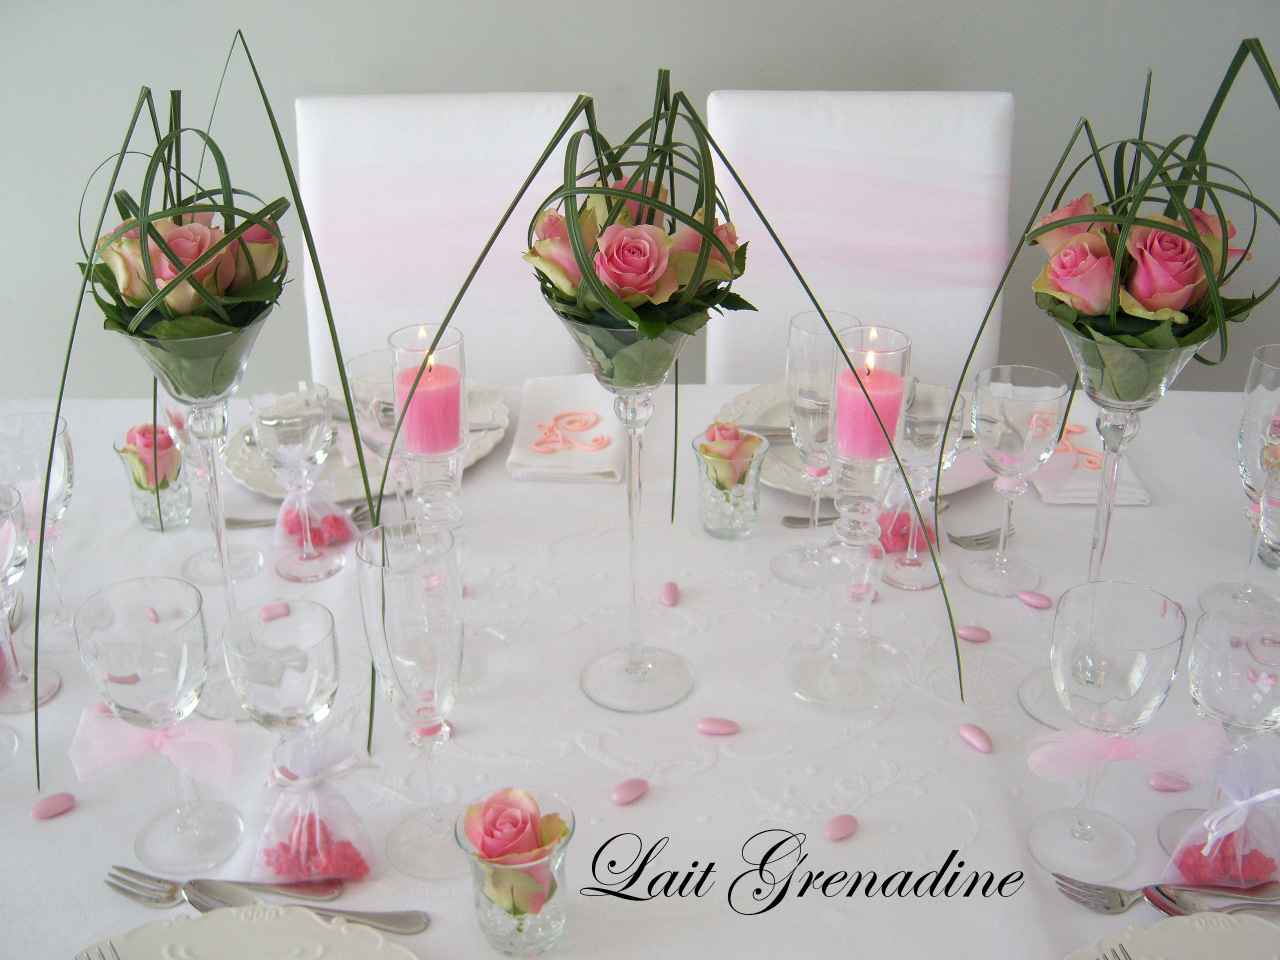 Id et photo d coration mariage centre de table en verre - Idee de decoration de table ...